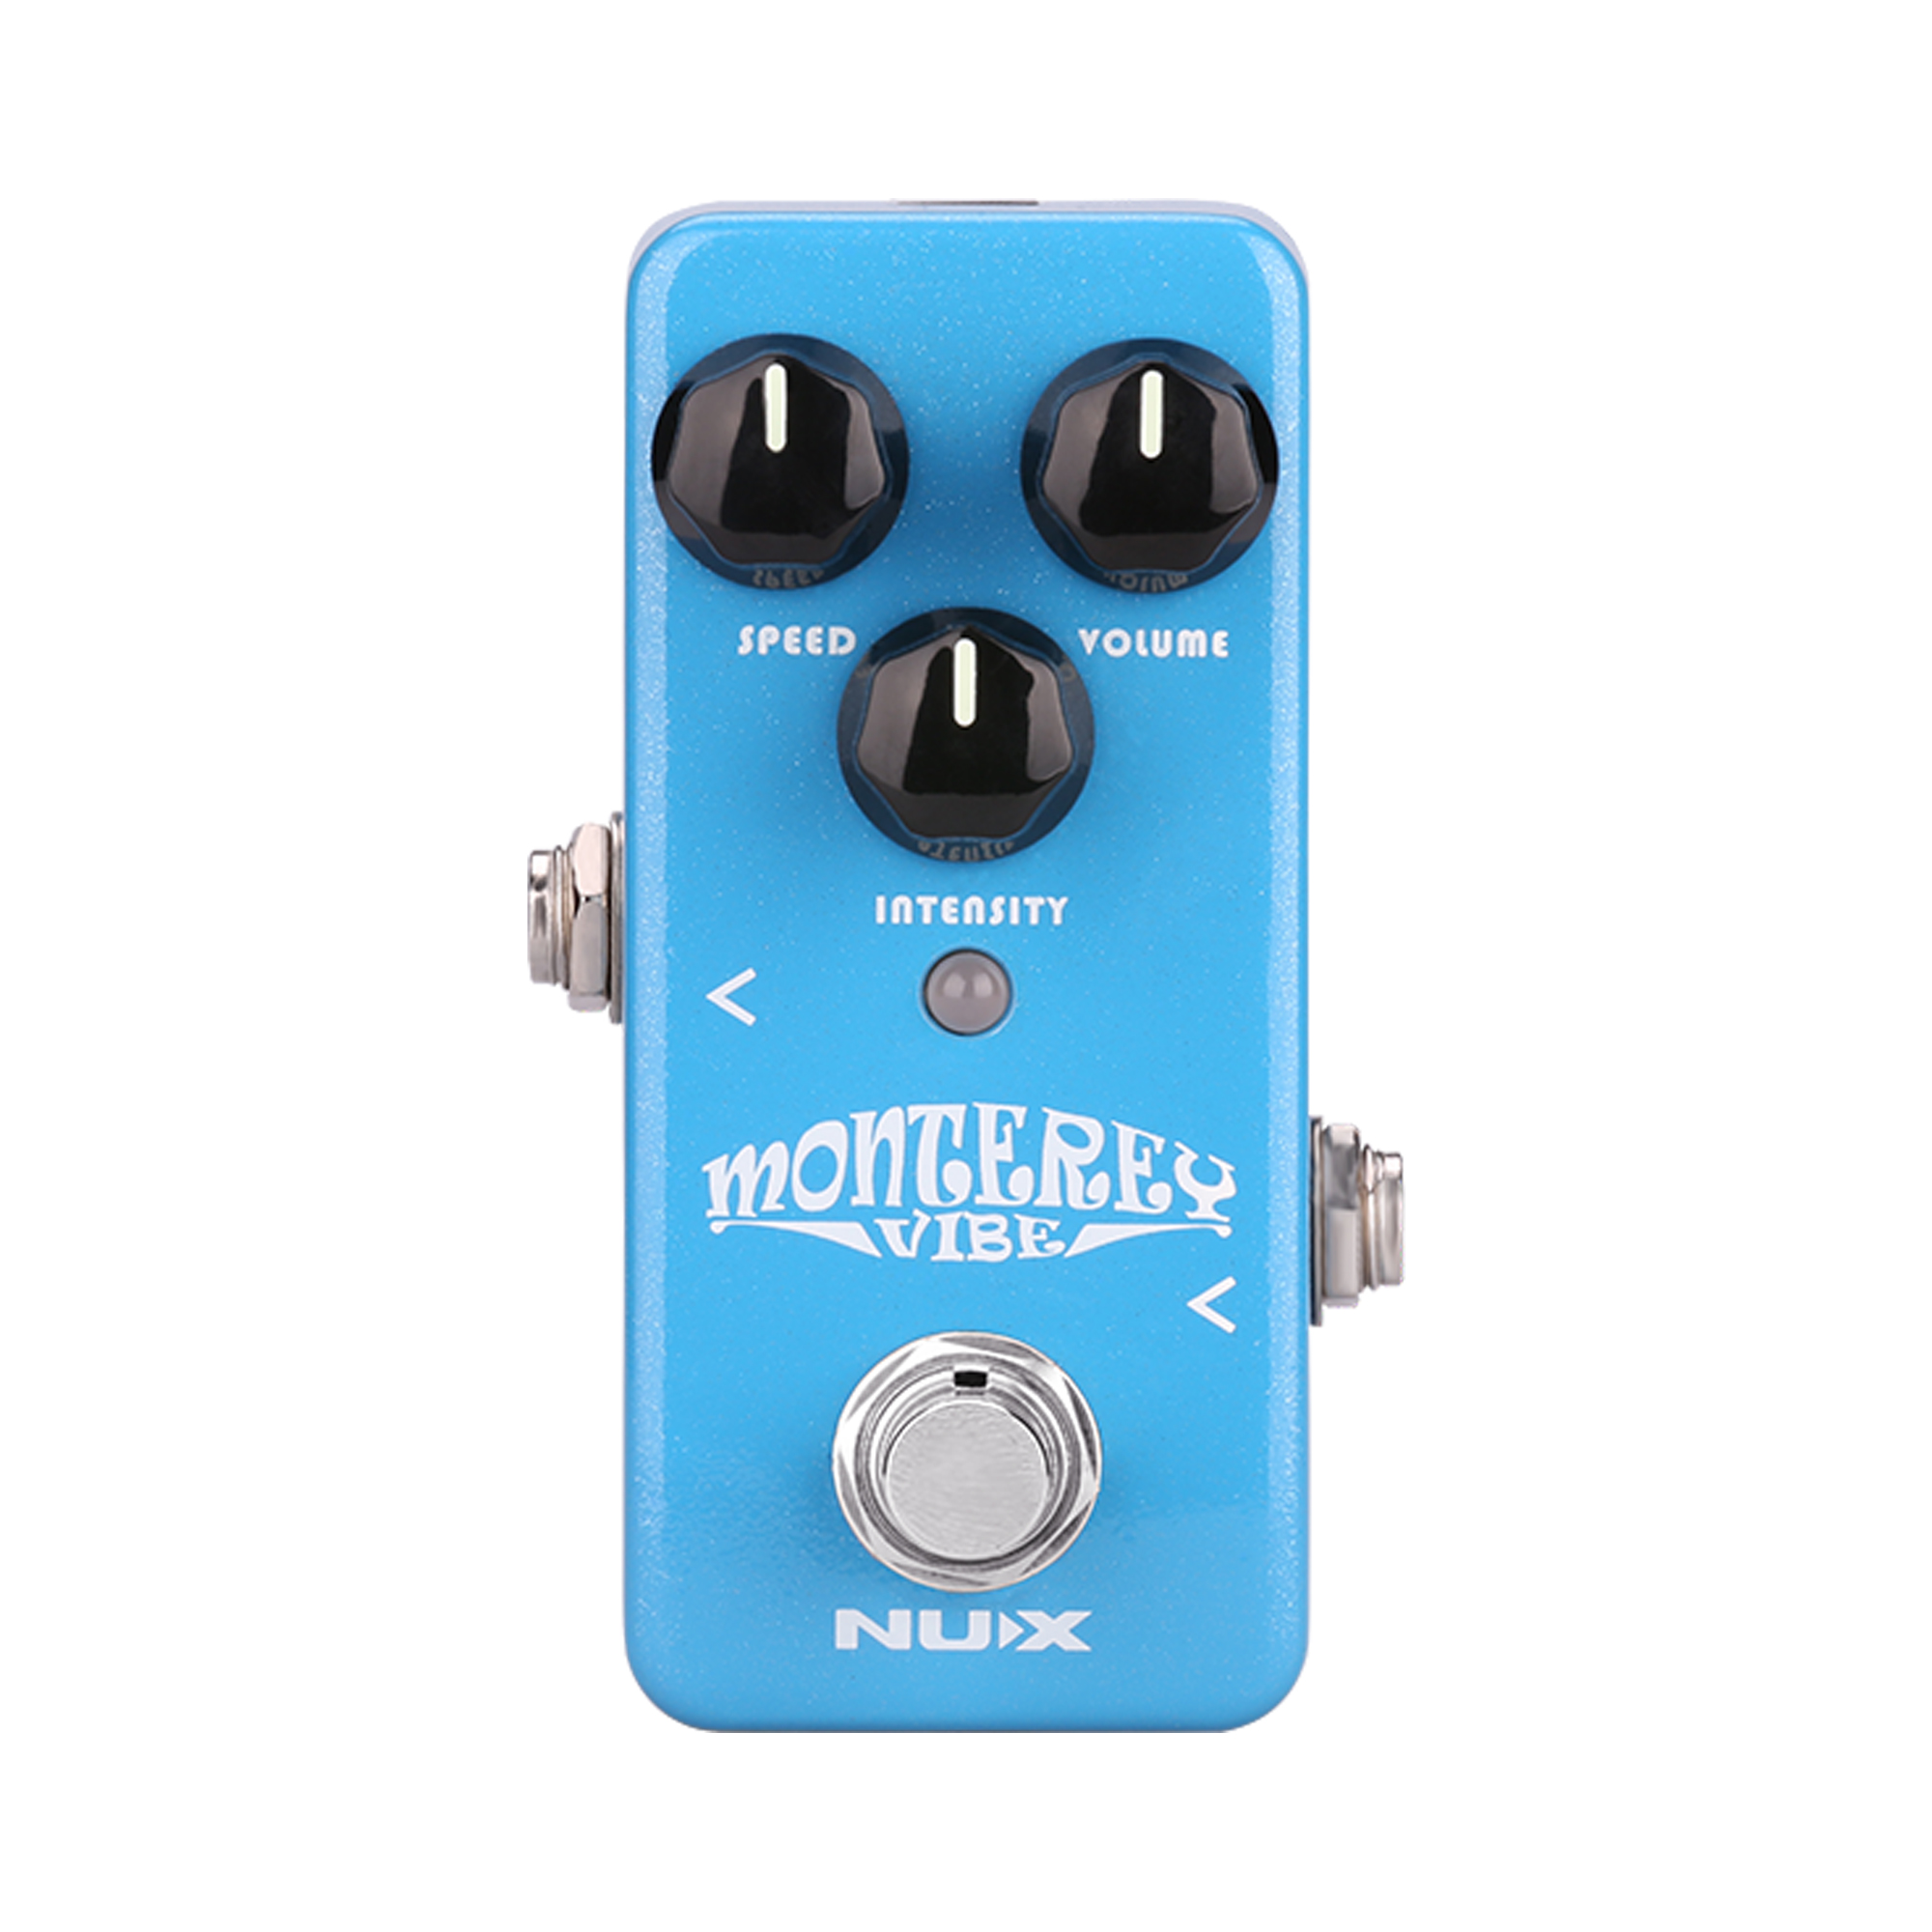 NUX Monterey Vibe Guitar Effect Pedal Mini Core Series Stompbox Chorus Rotary-Speaker Phaser Effects Complex Psychedelic Sound